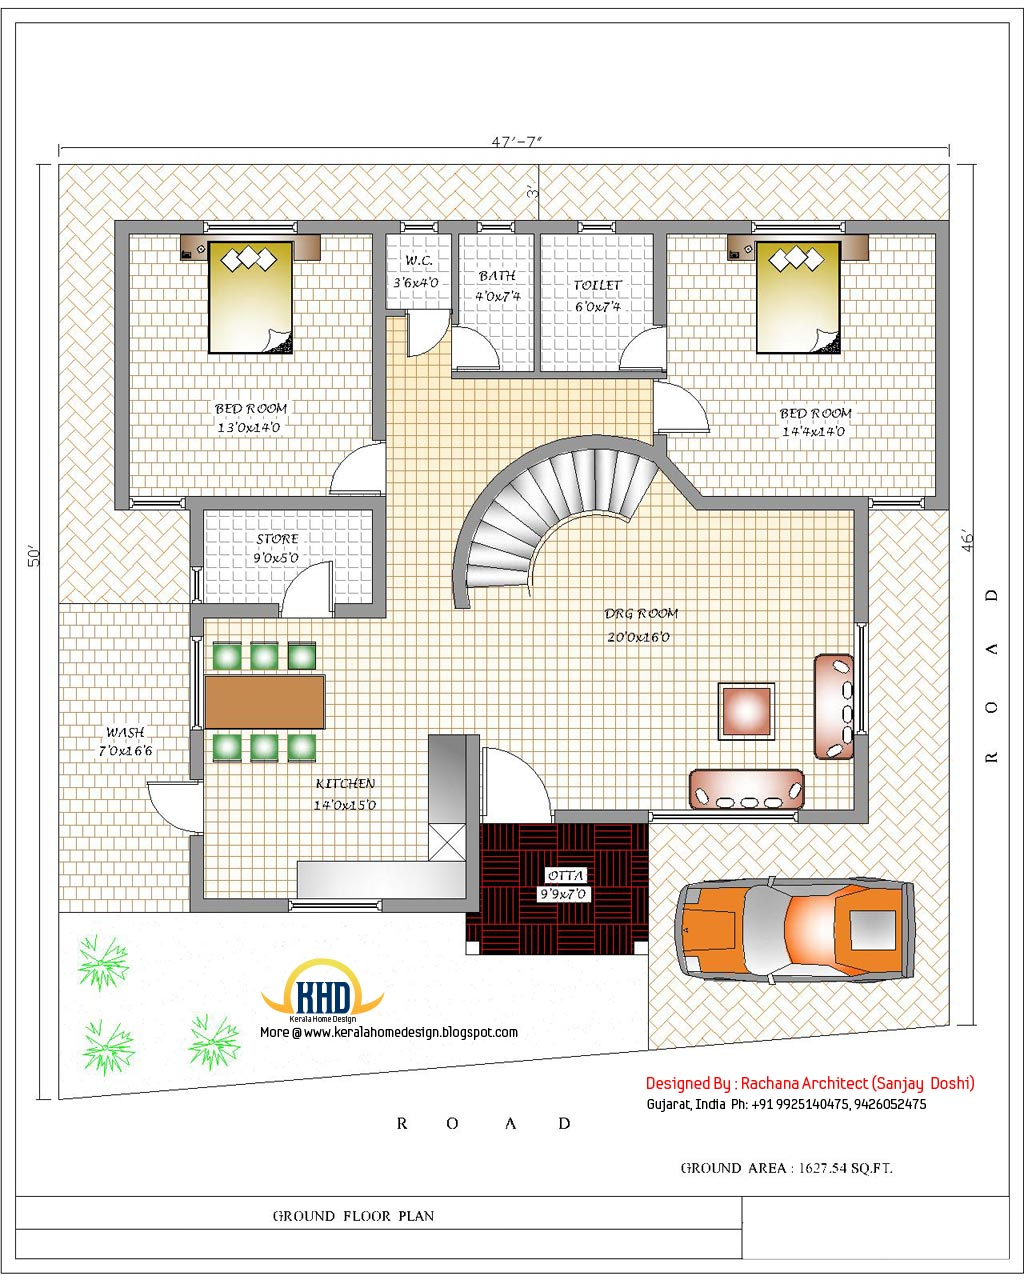 Floor Plans 3000 Square Feet Ranch Style further One Story 1800 Sq Ft House Plans 2 Car Garage additionally 3 Bedroom Ranch Floor Plans Under 2000 Square Feet further 2 Bedroom 720 Square Feet House Plans furthermore 1000 Foot 3 Bedroom Floor Plans. on 4 bedroom floor plans under 2500 sq ft